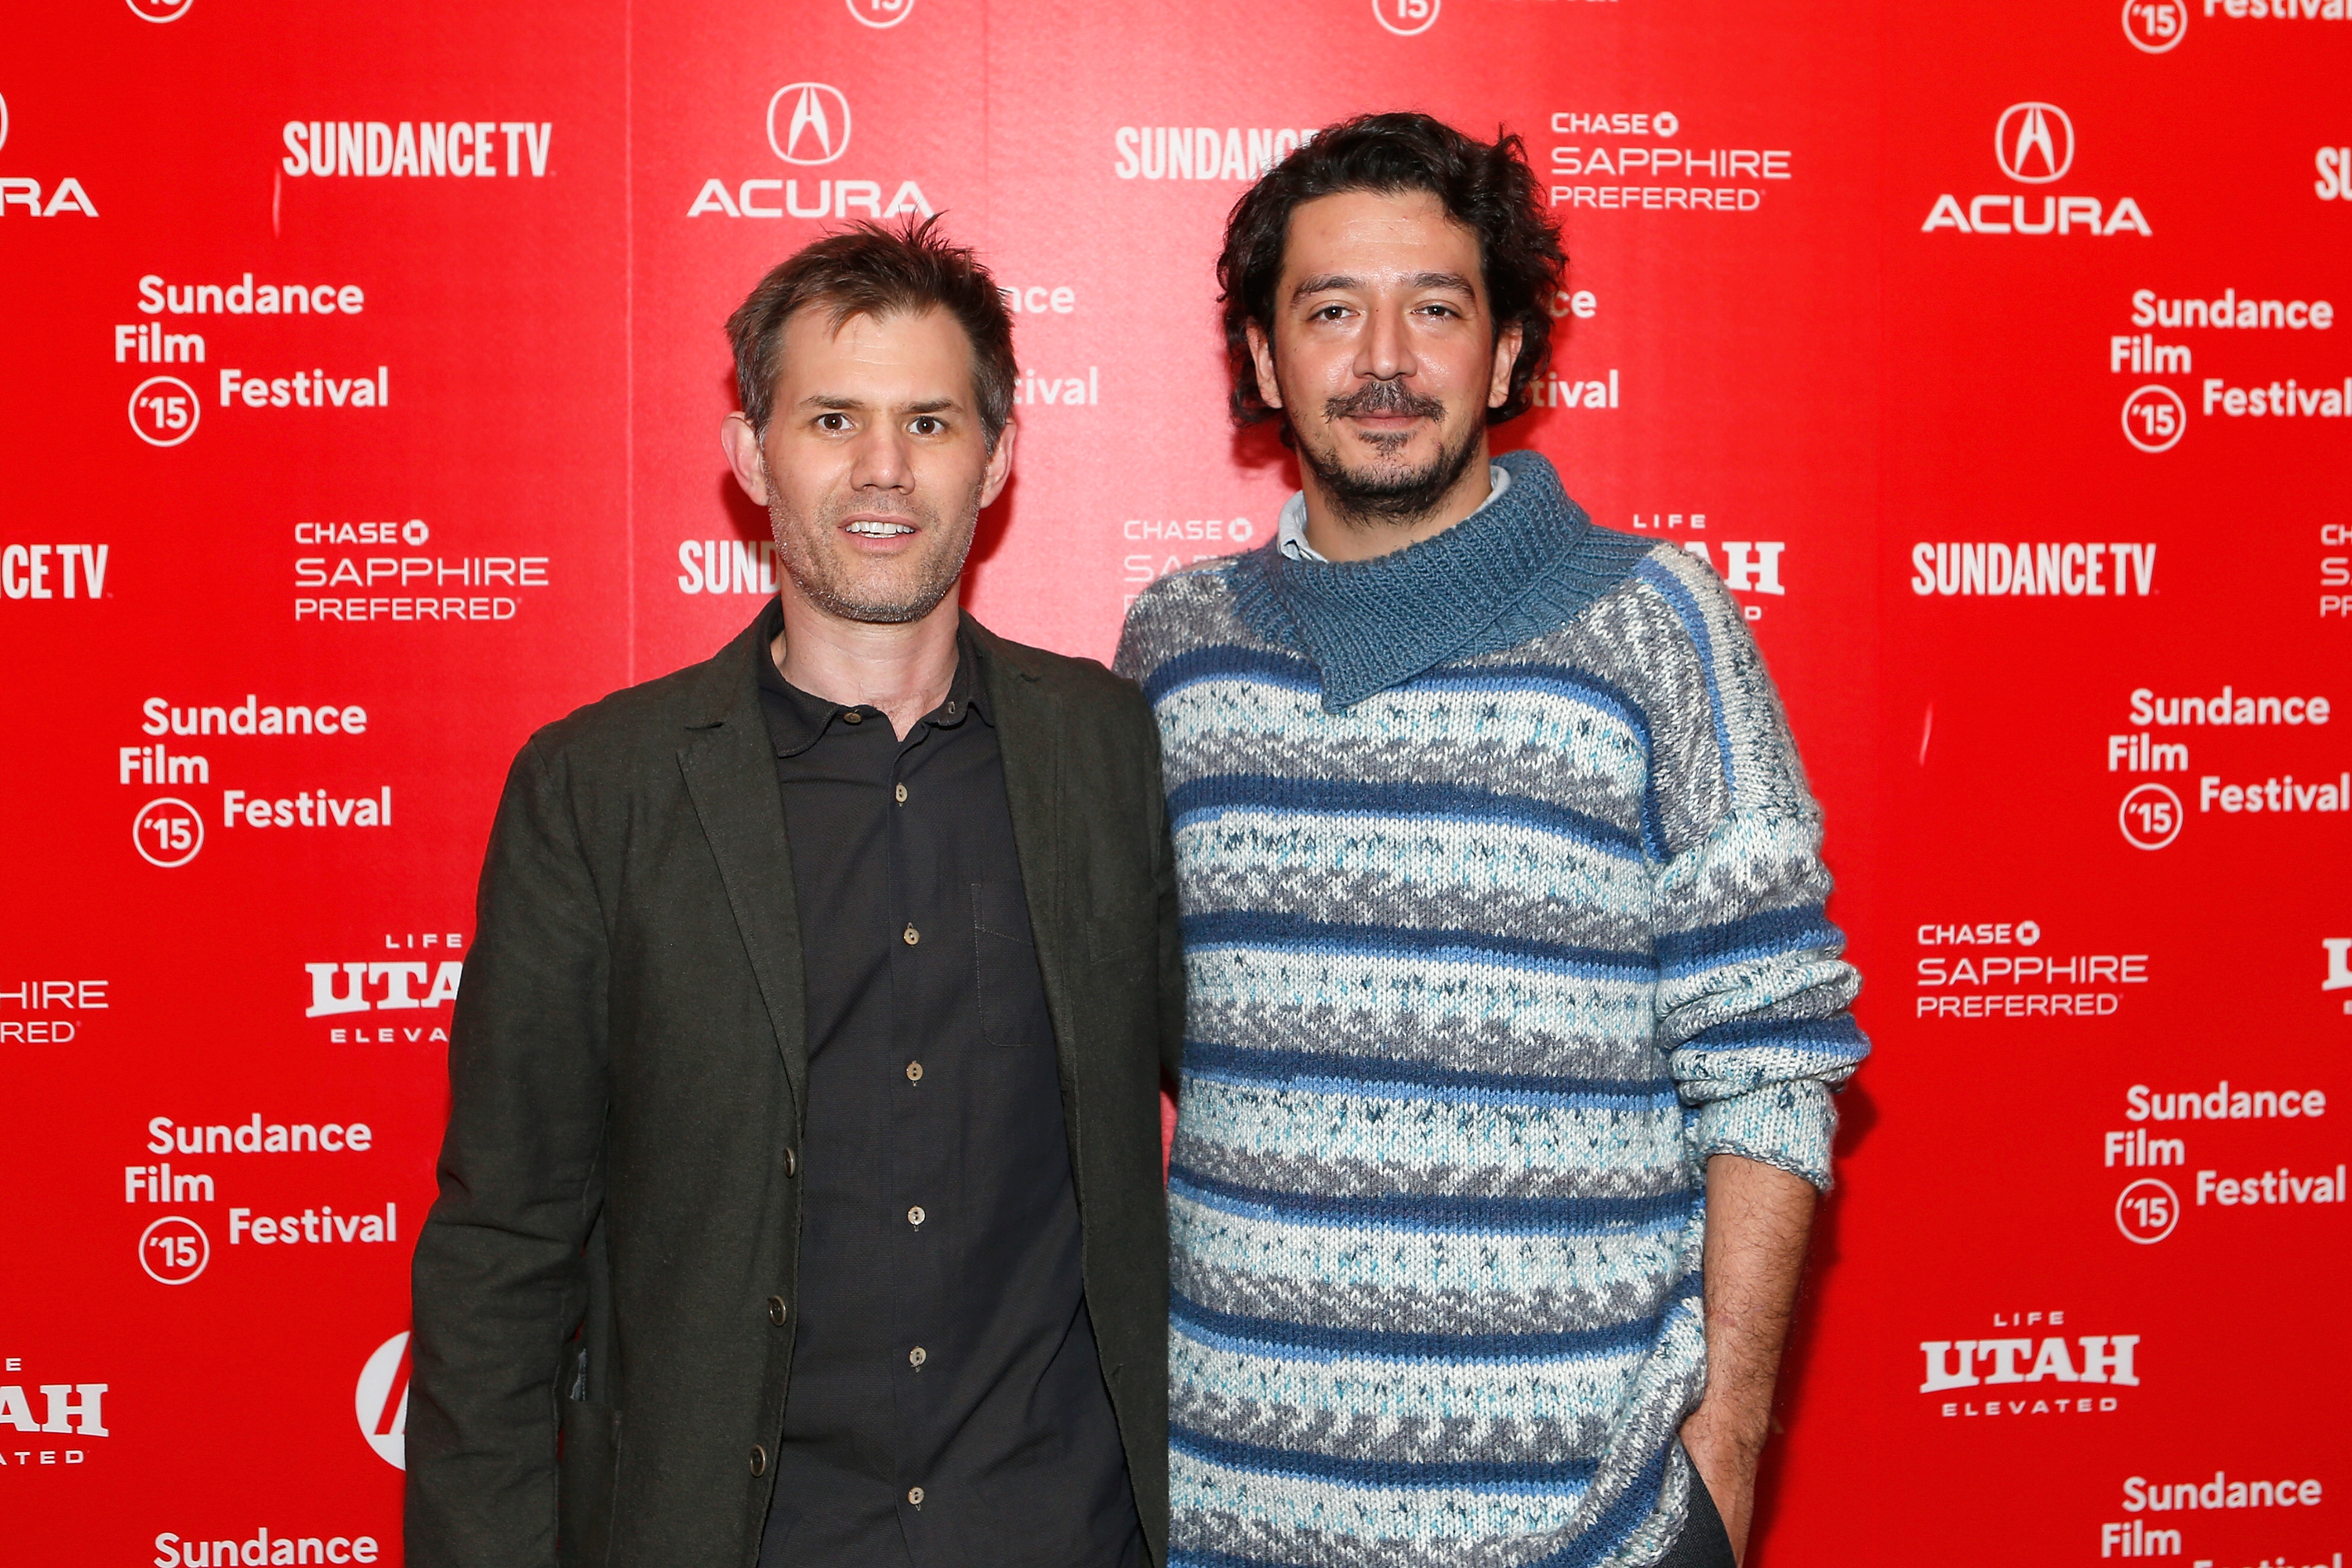 Directors and writers John Nein and Tolga Karacelik attend the  Ivy  premiere during the 2015 Sundance Film Festival in Park City, Utah on Jan. 26, 2015.